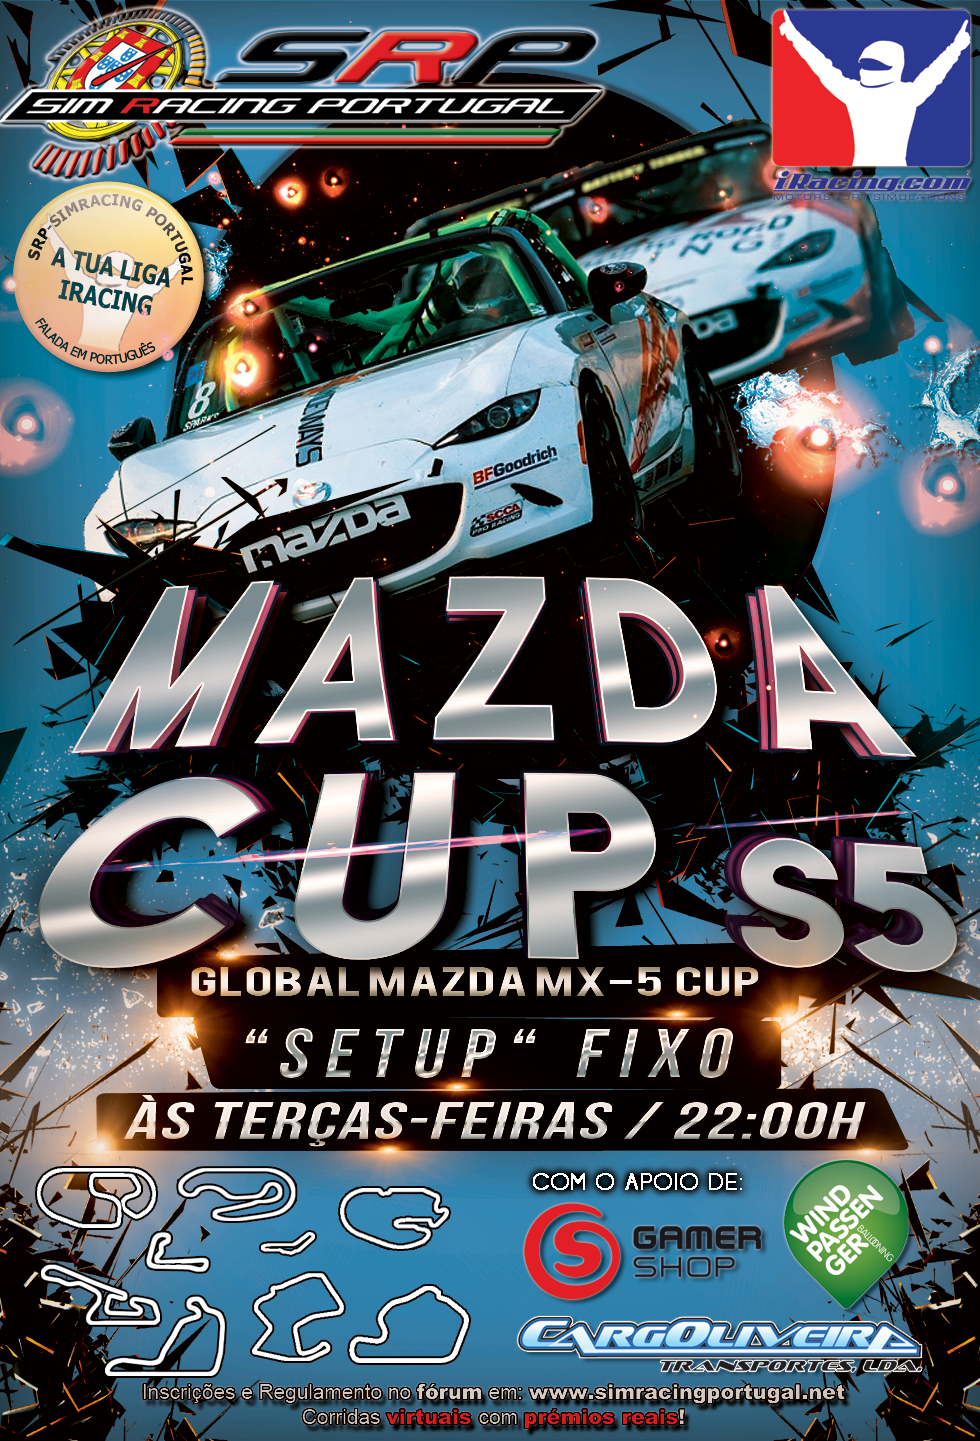 [Image: MazdaCupS5.png]